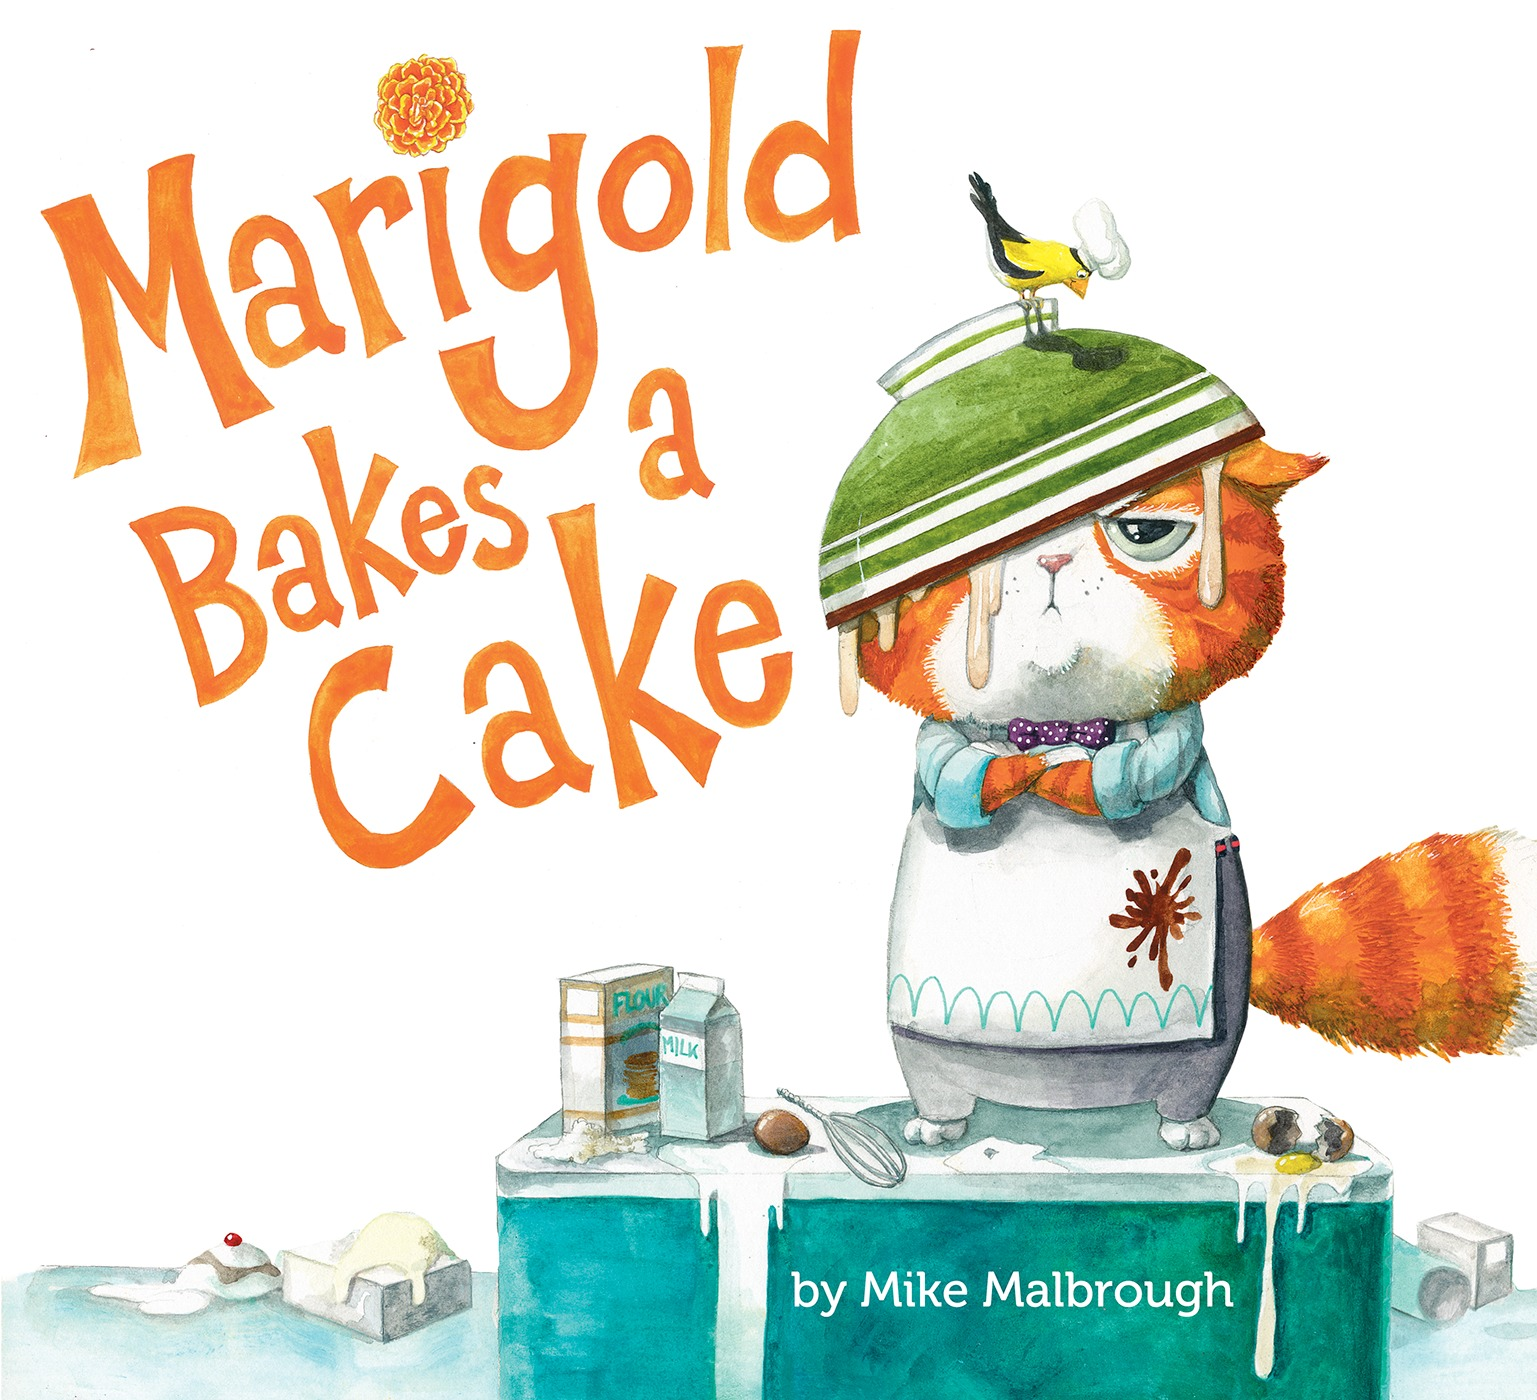 Sunday Story Time with Mike Malbrough (Author & Illustrator of Marigold Bakes a Cake)